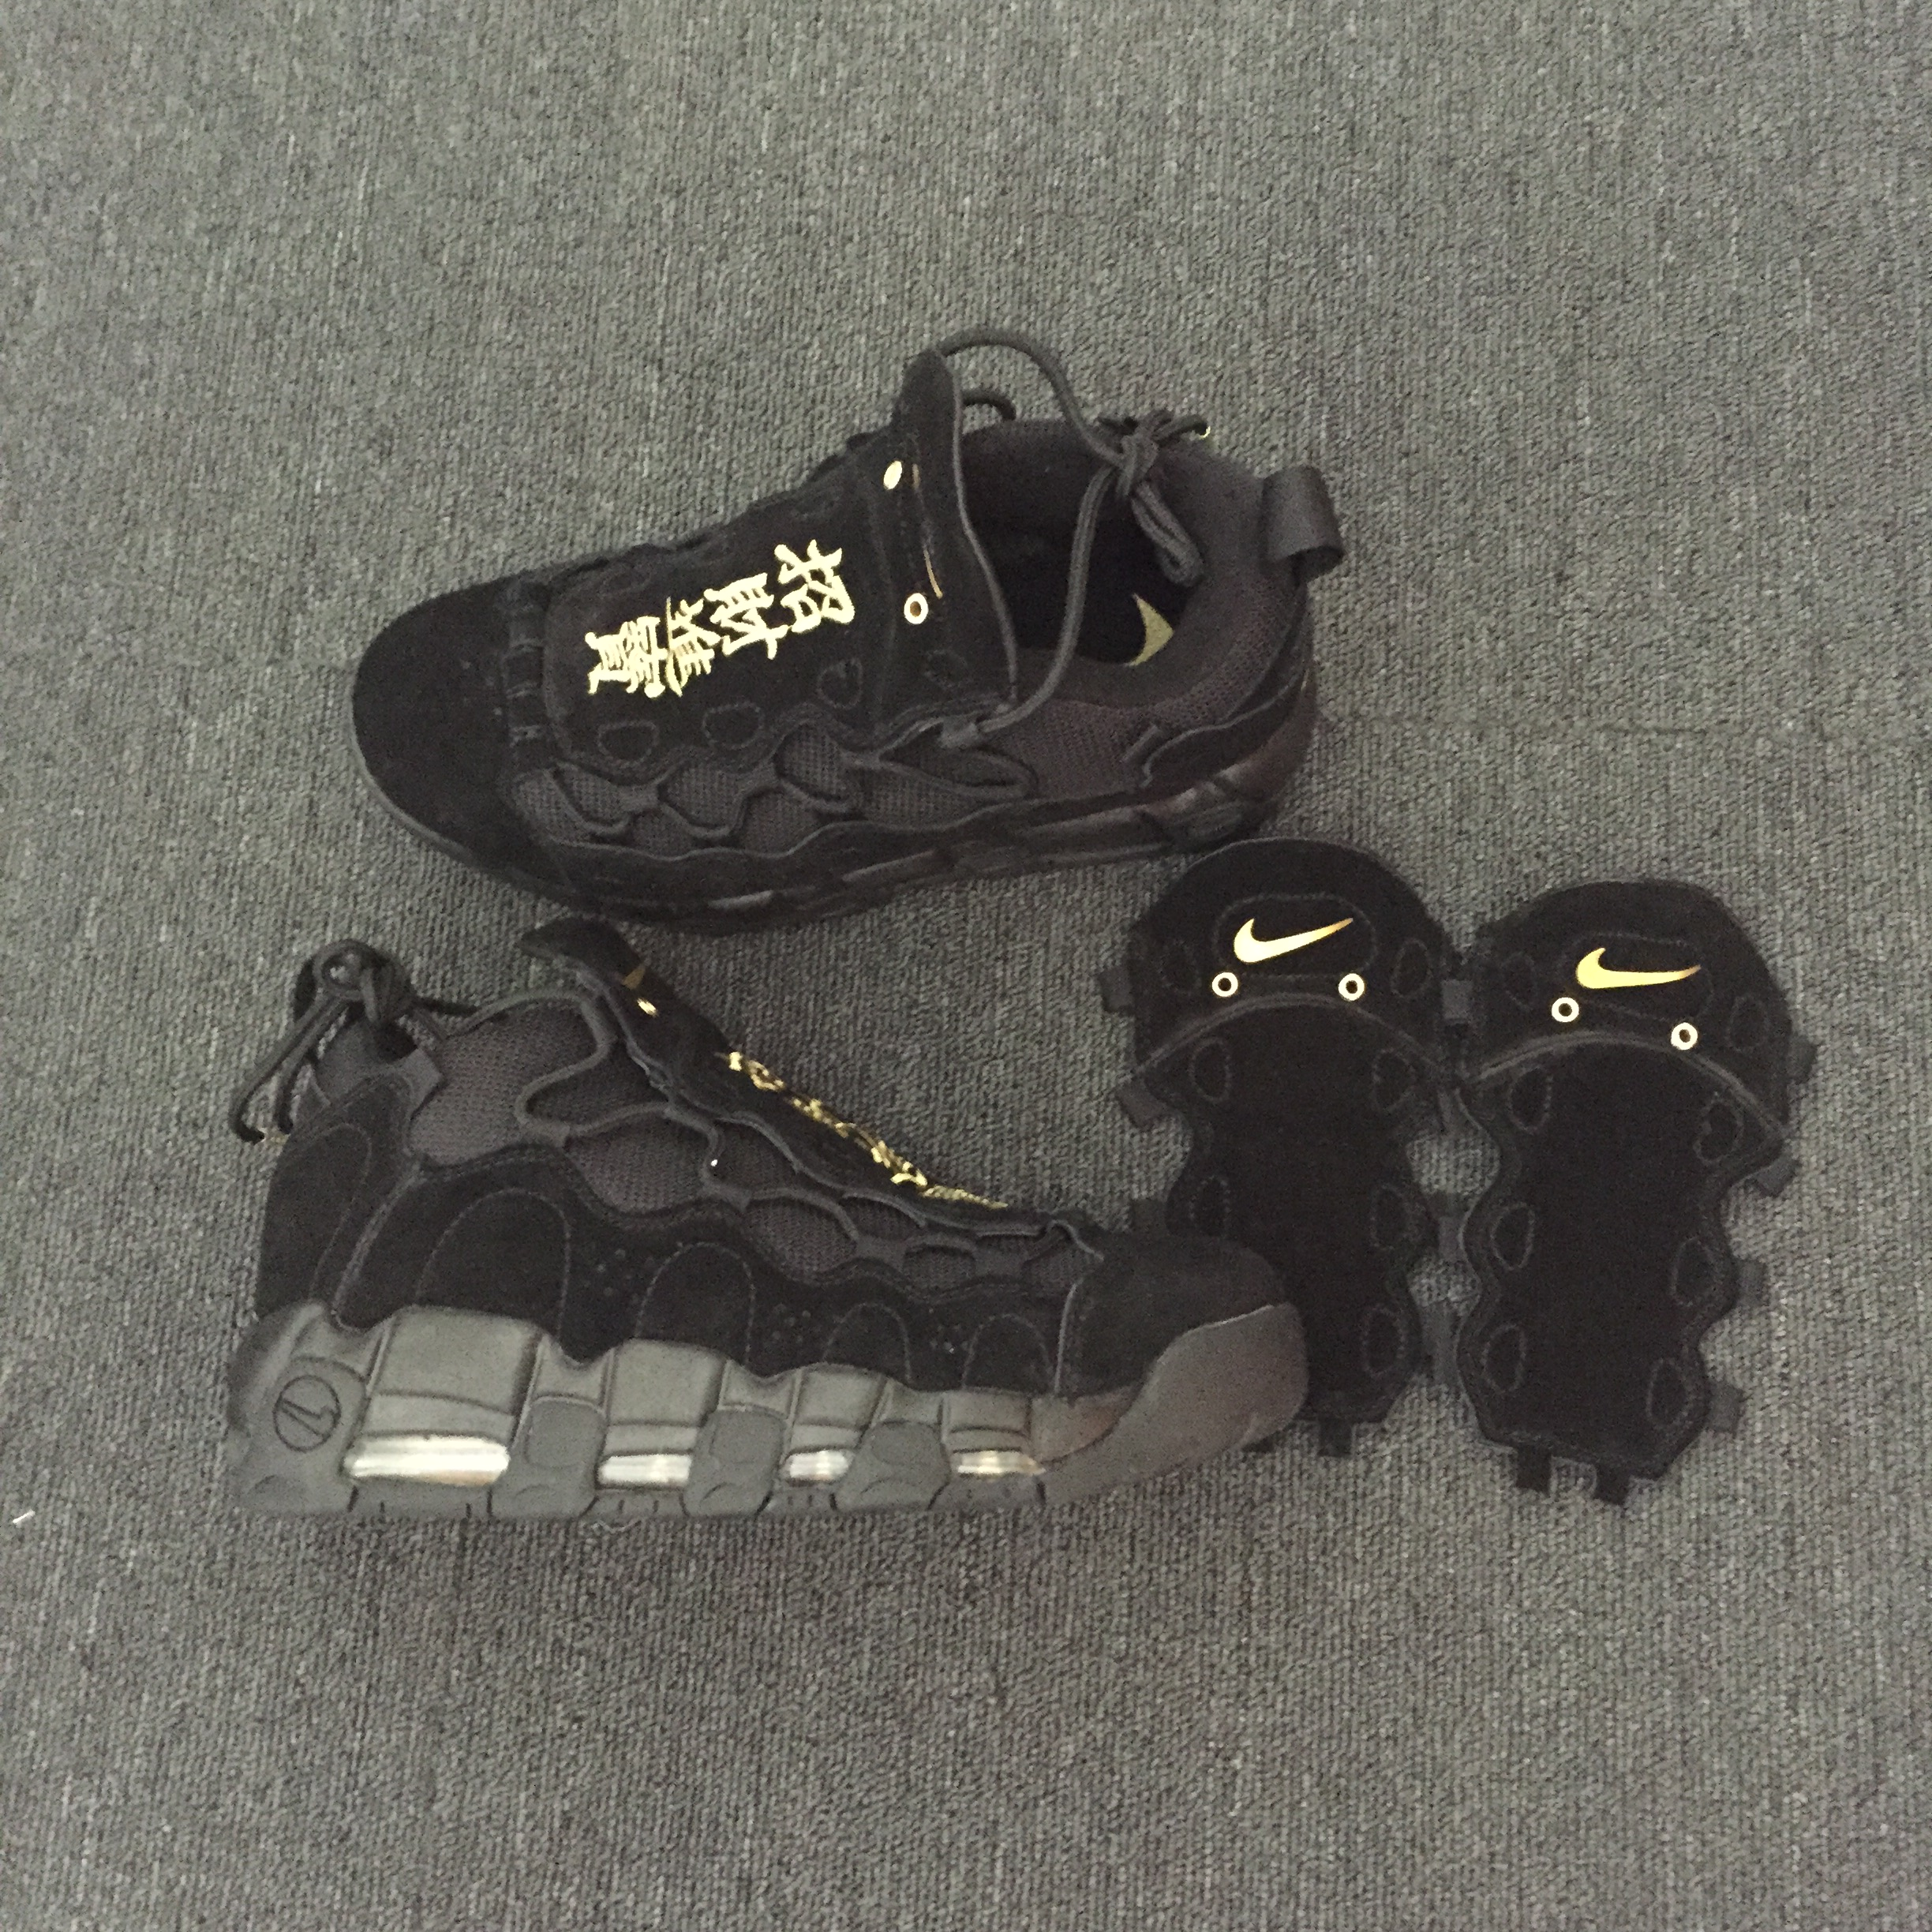 Nike Air More Uptempo Kung Hei Fat Choi Black Shoes